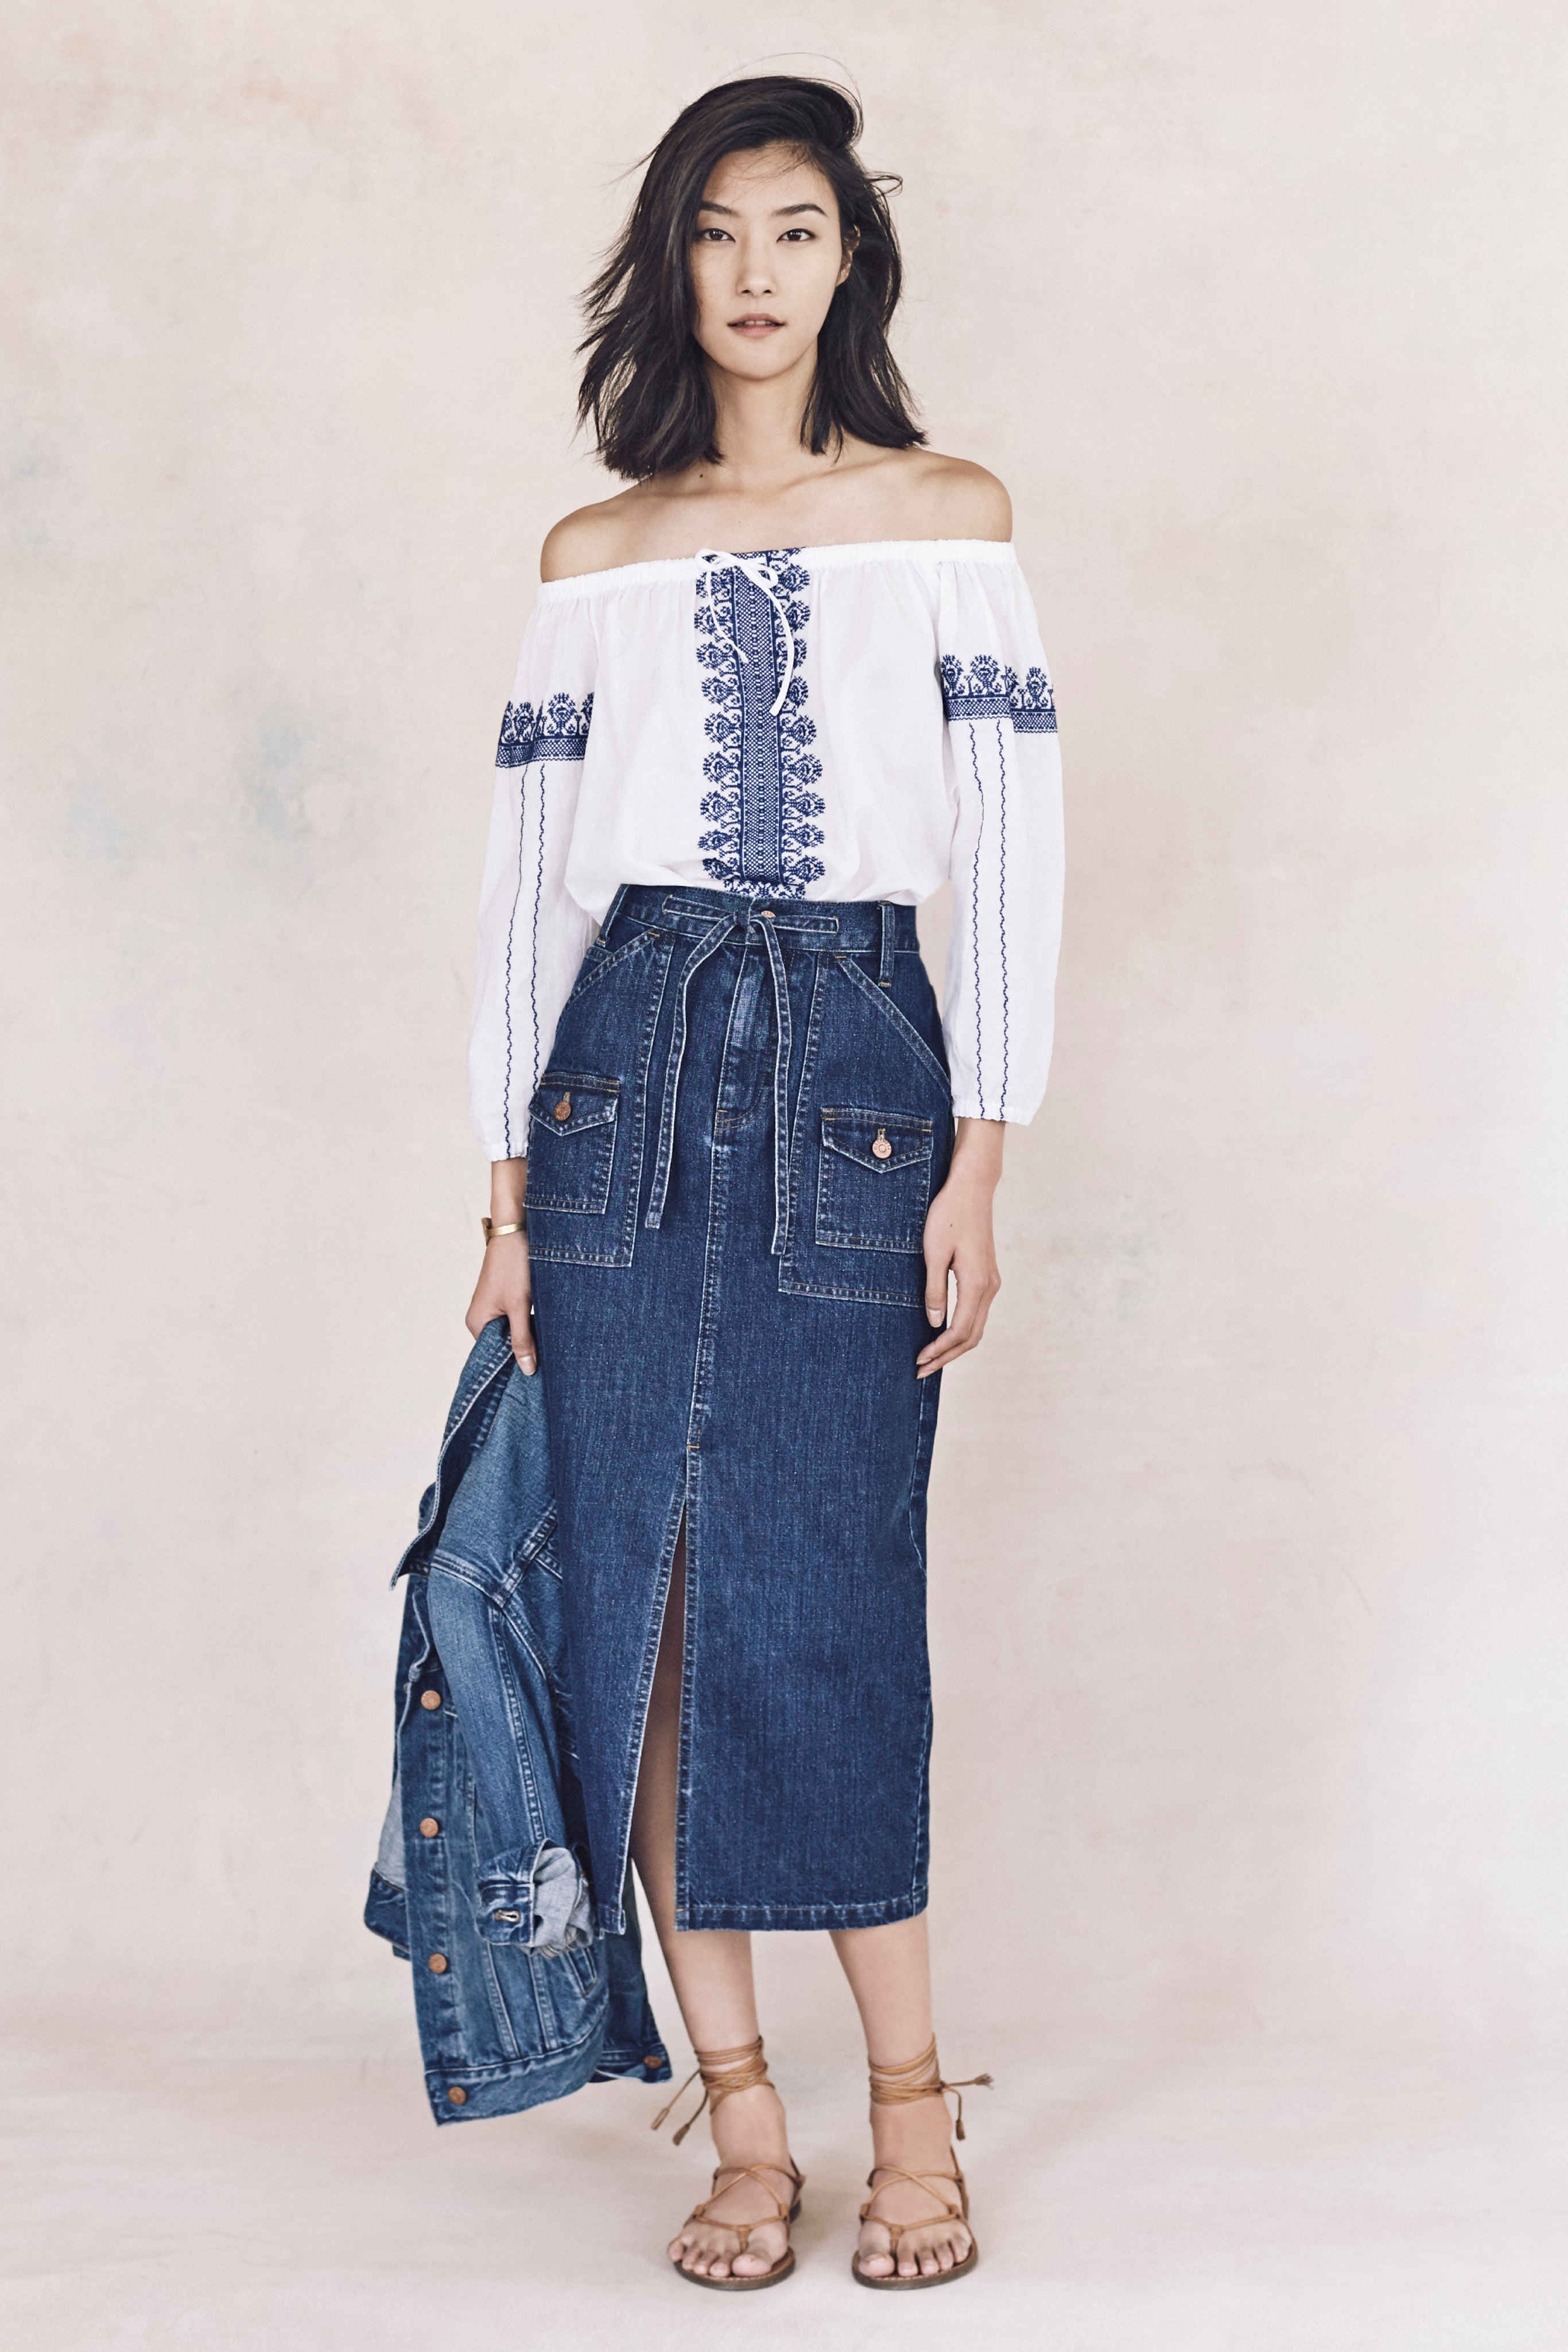 Madewell just released their spring 2016 collection, and trust me, you are going to be clamoring for every single piece. It's just so wearable. - Madewell Spring 2016 Lookbook - Denim